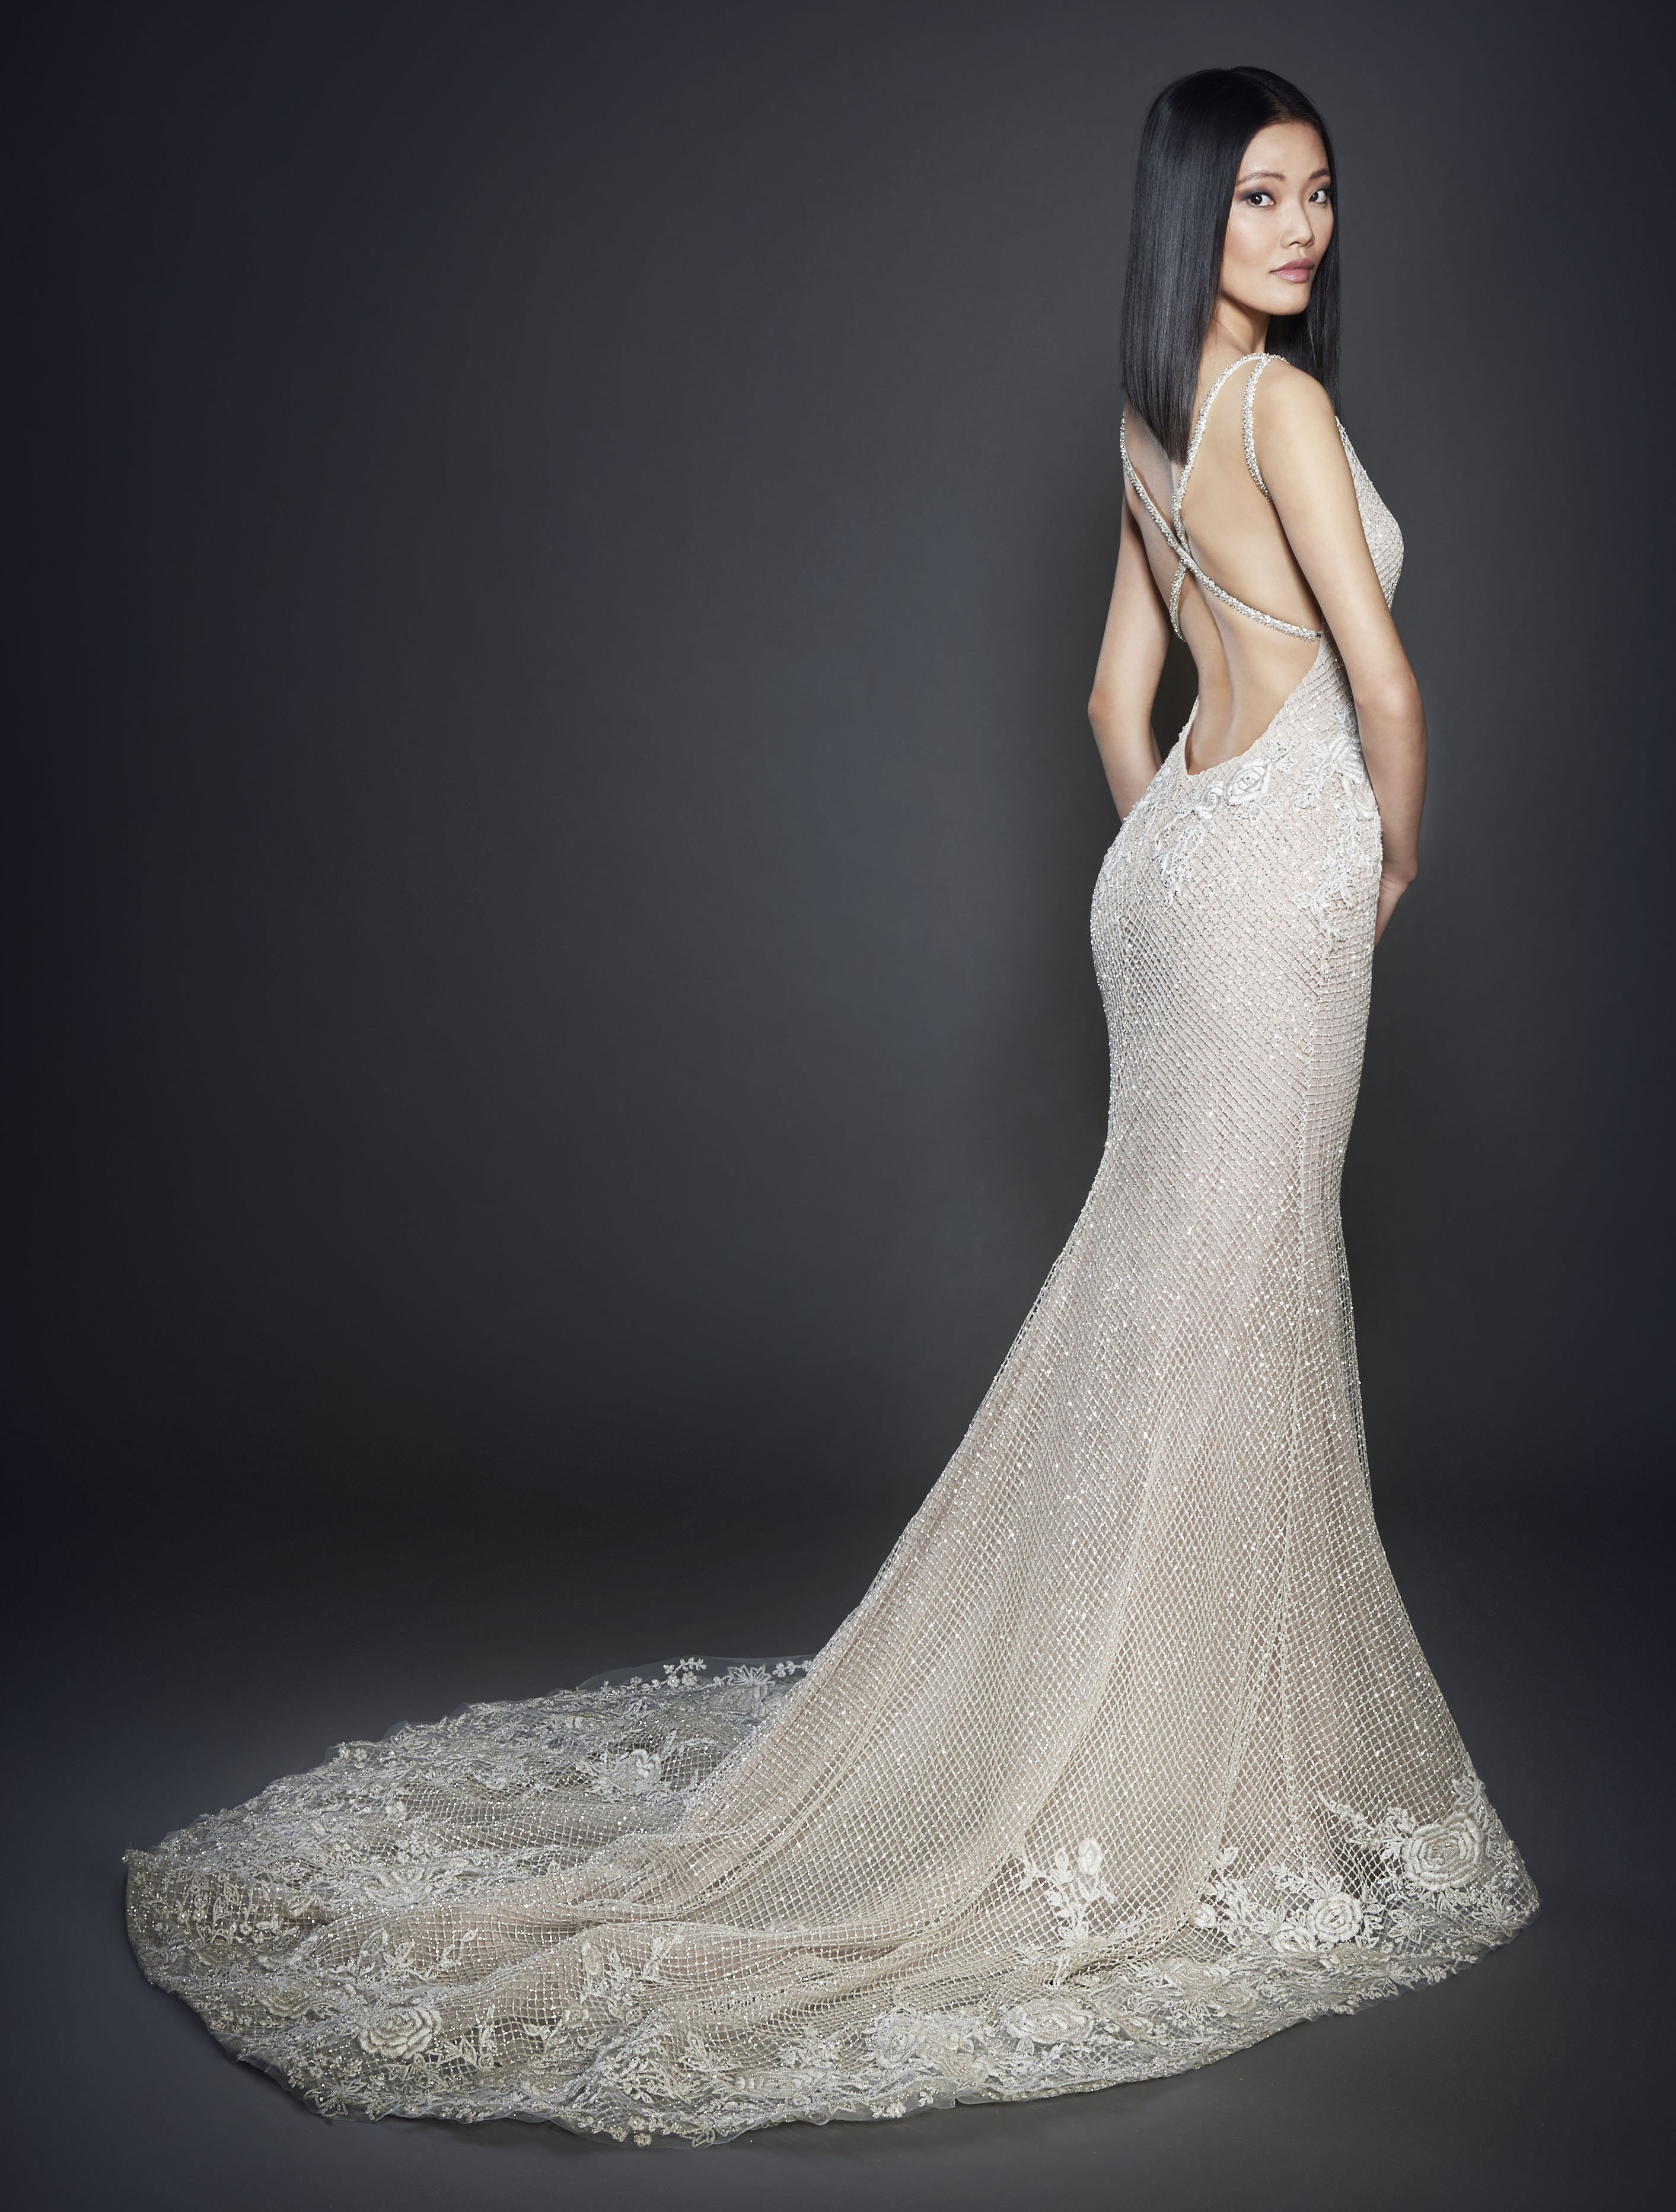 Bridal Gowns and Wedding Dresses by JLM Couture - Style 3701